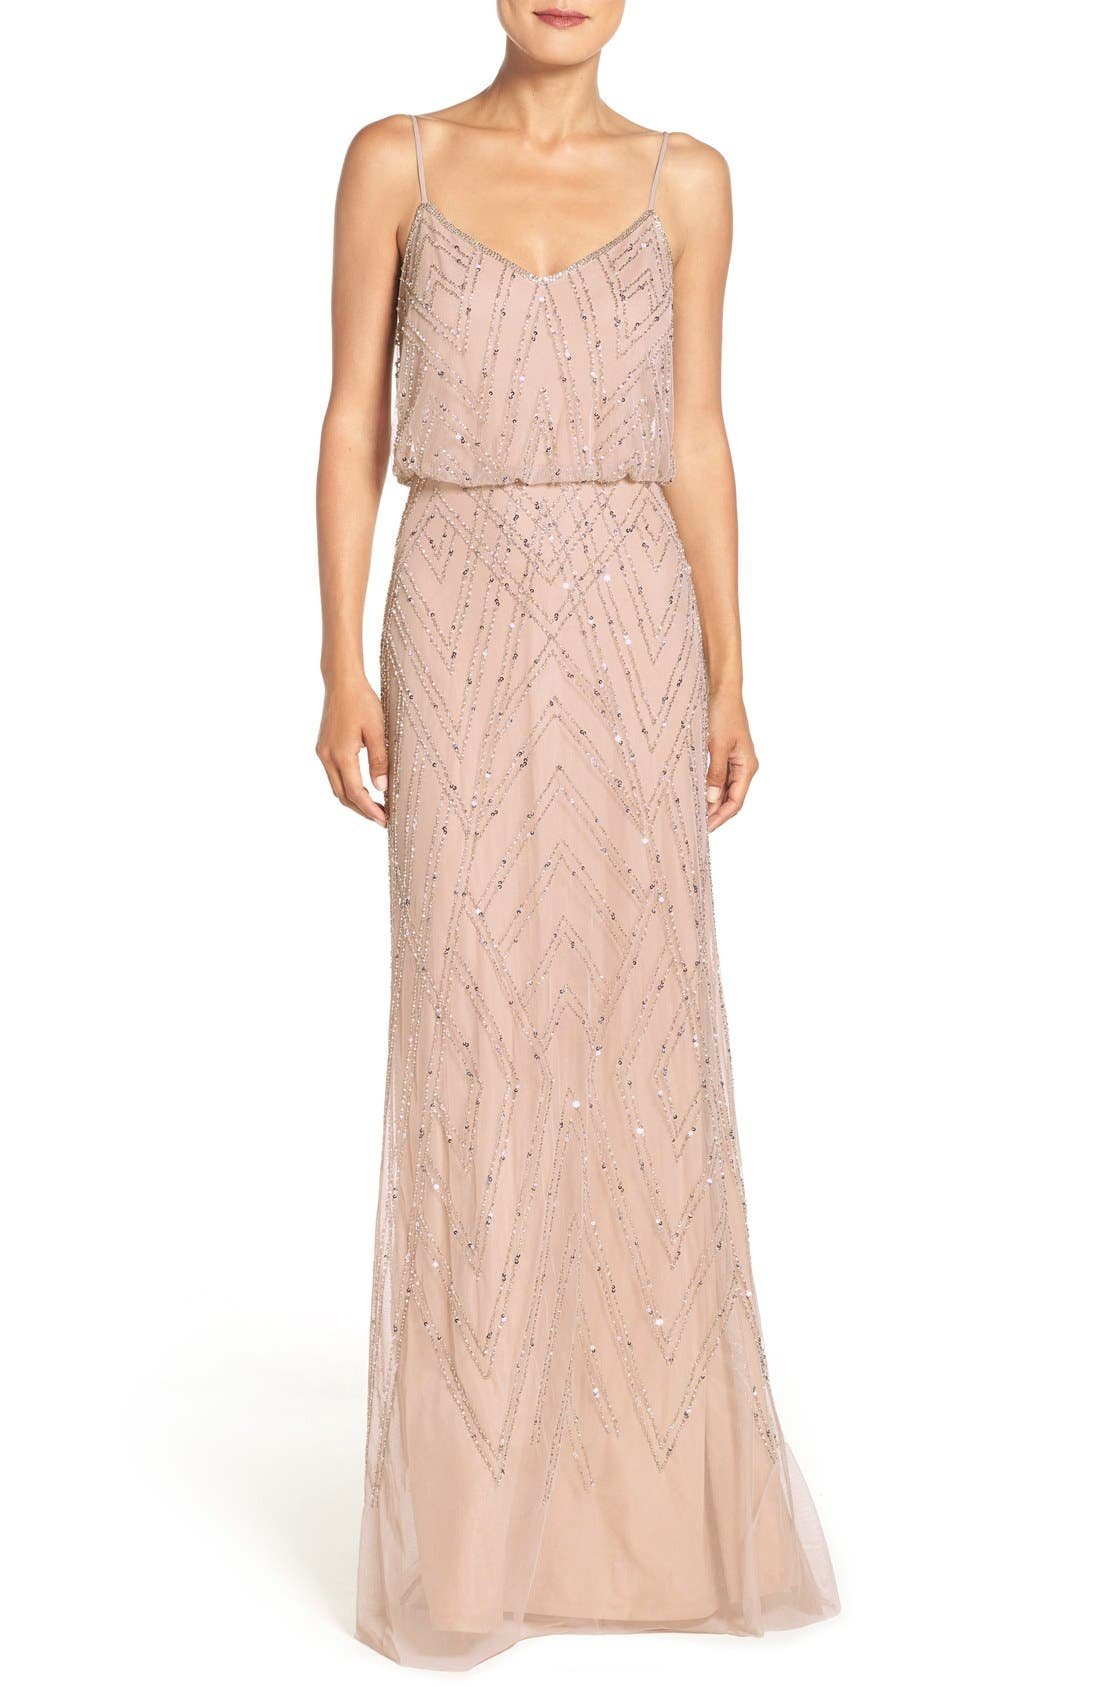 Alternate Image 1 Selected - Adrianna Papell Embellished Blouson Gown